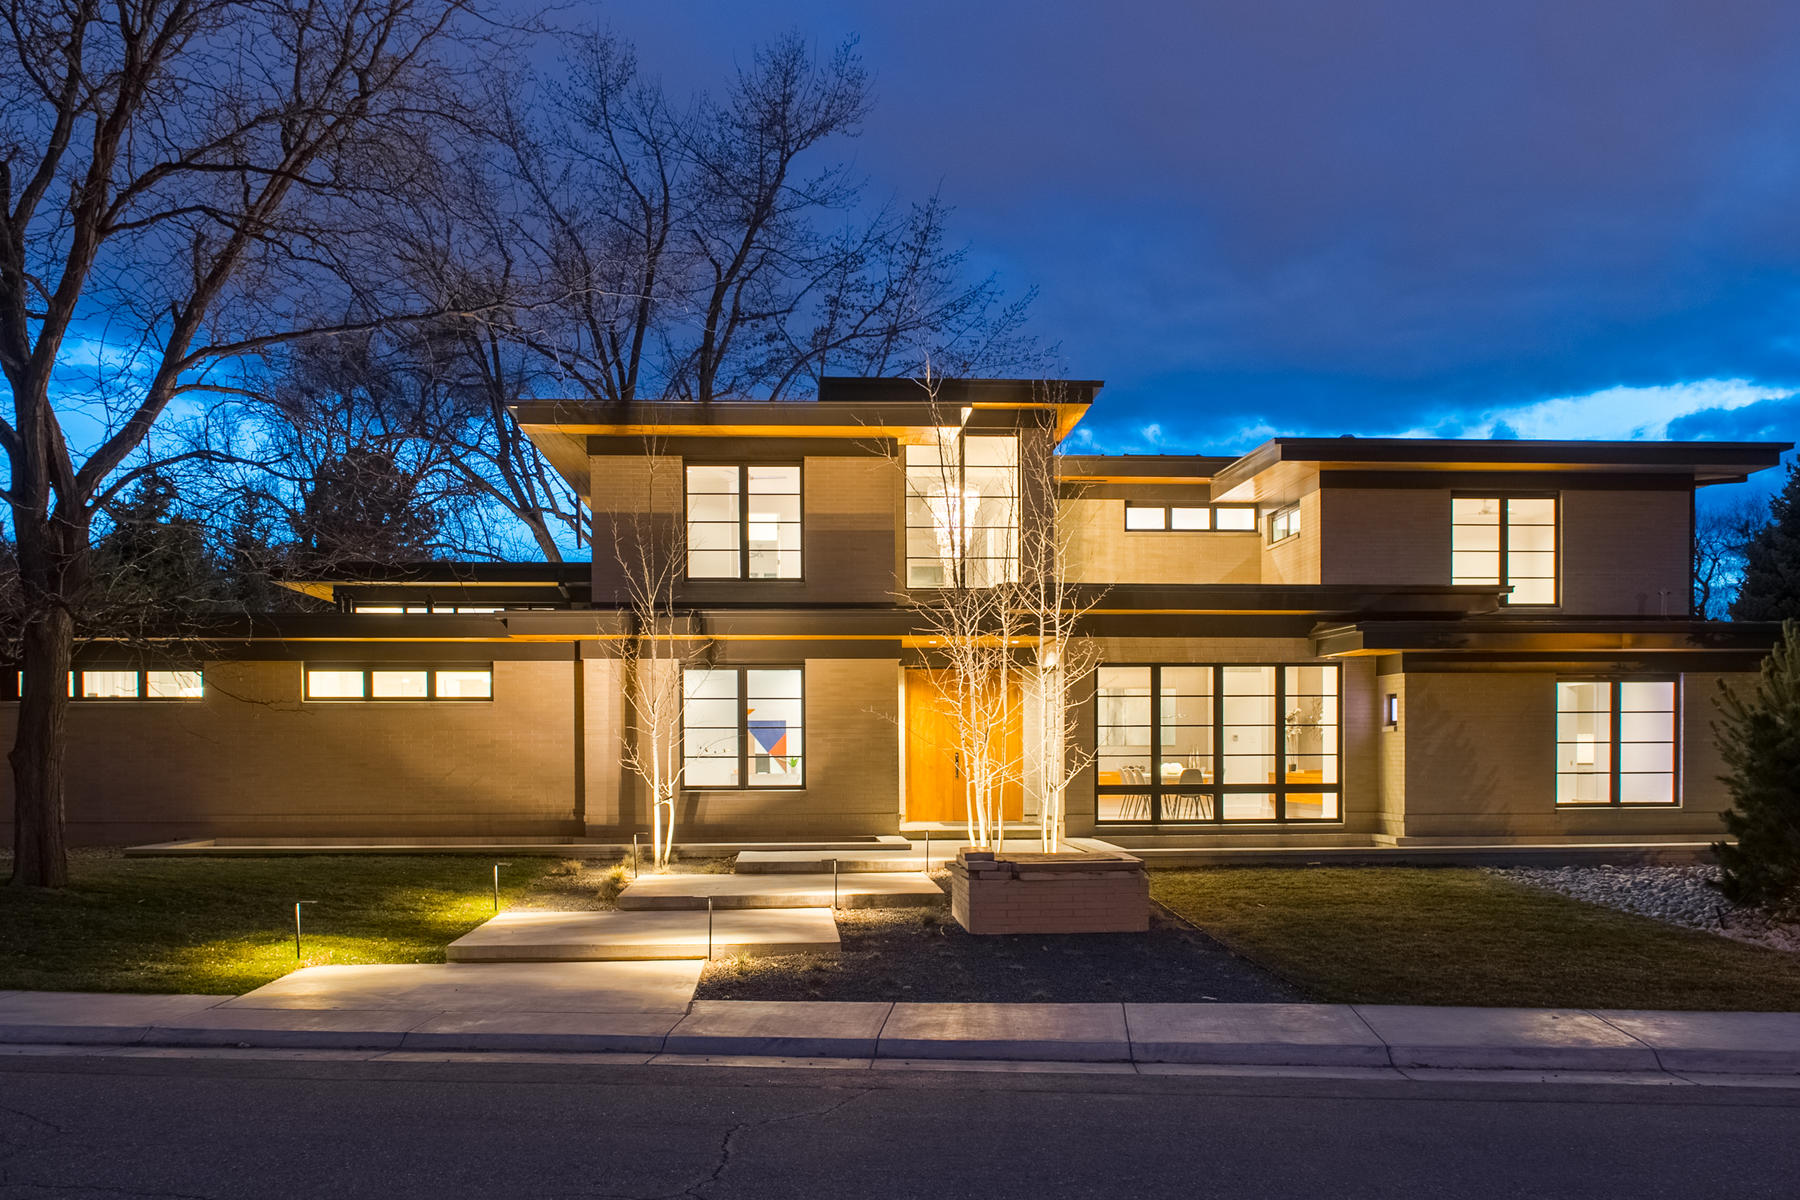 Property for Active at The Finest Ultra-Mid-Century New Construction 701 South Jackson Street Denver, Colorado 80209 United States